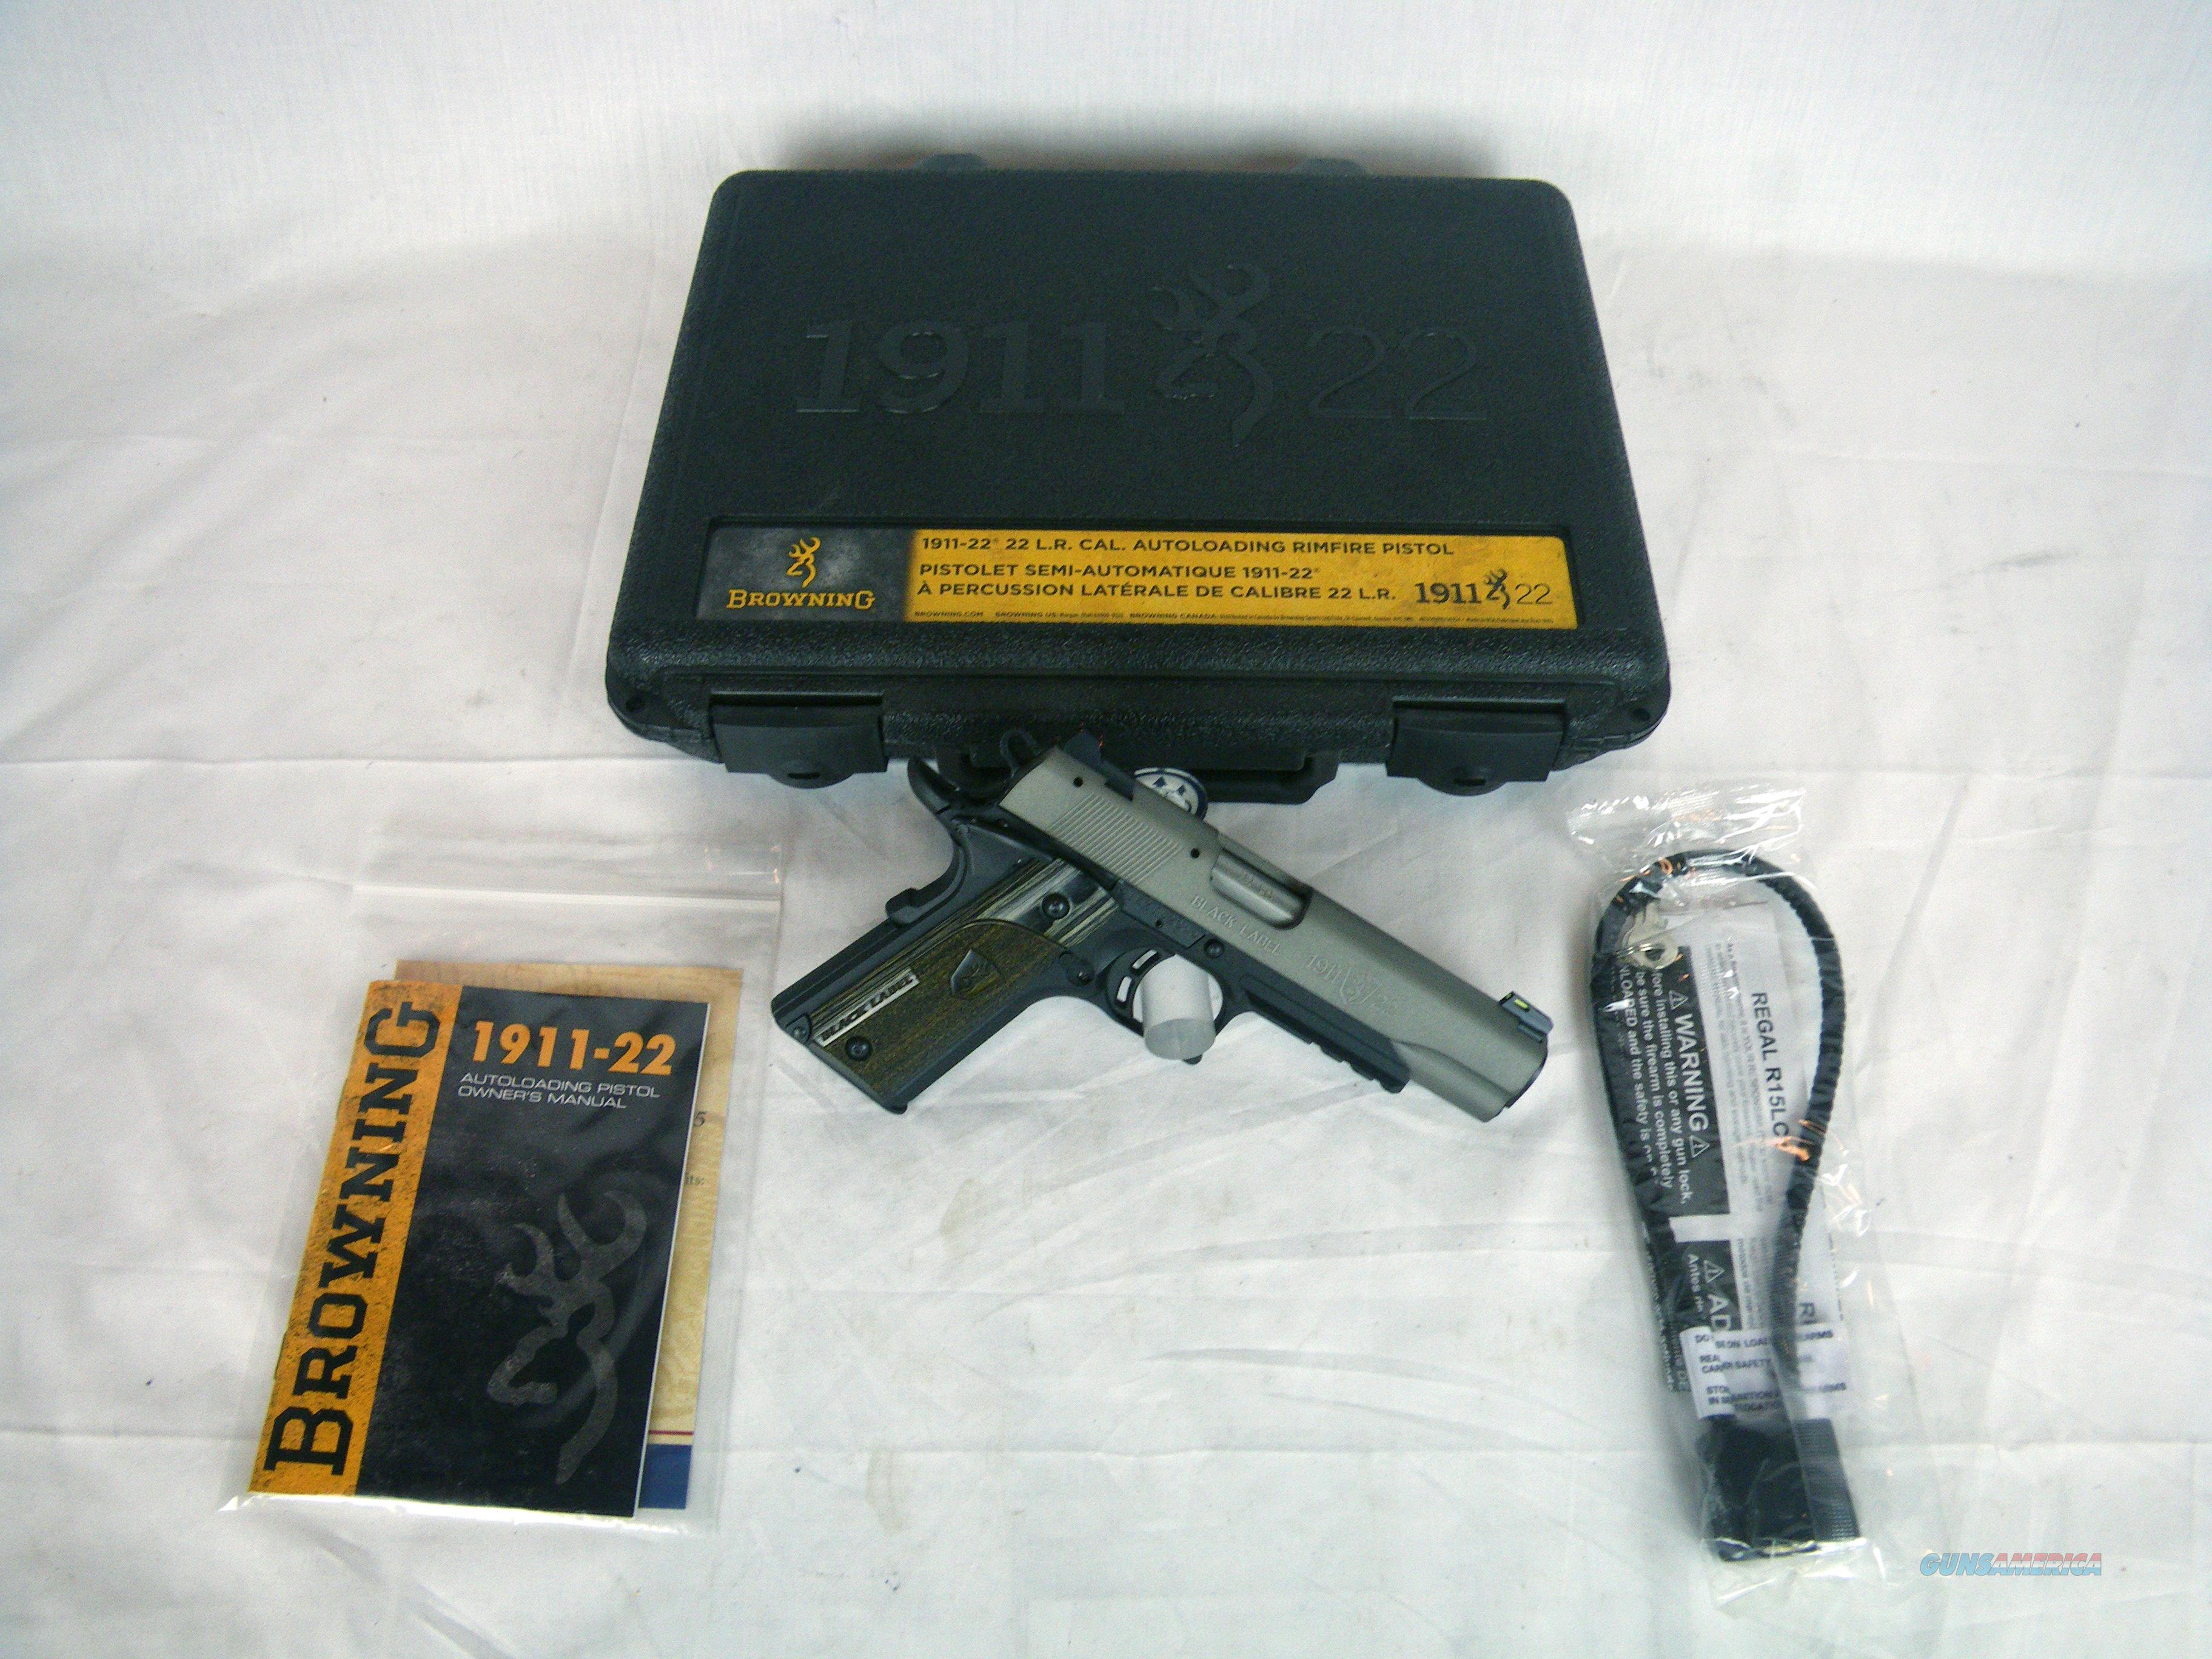 """Browning 1911-22 Gray Full Size W/Rail 22lr 4-1/4"""" #051848490  Guns > Pistols > Browning Pistols > Other Autos"""